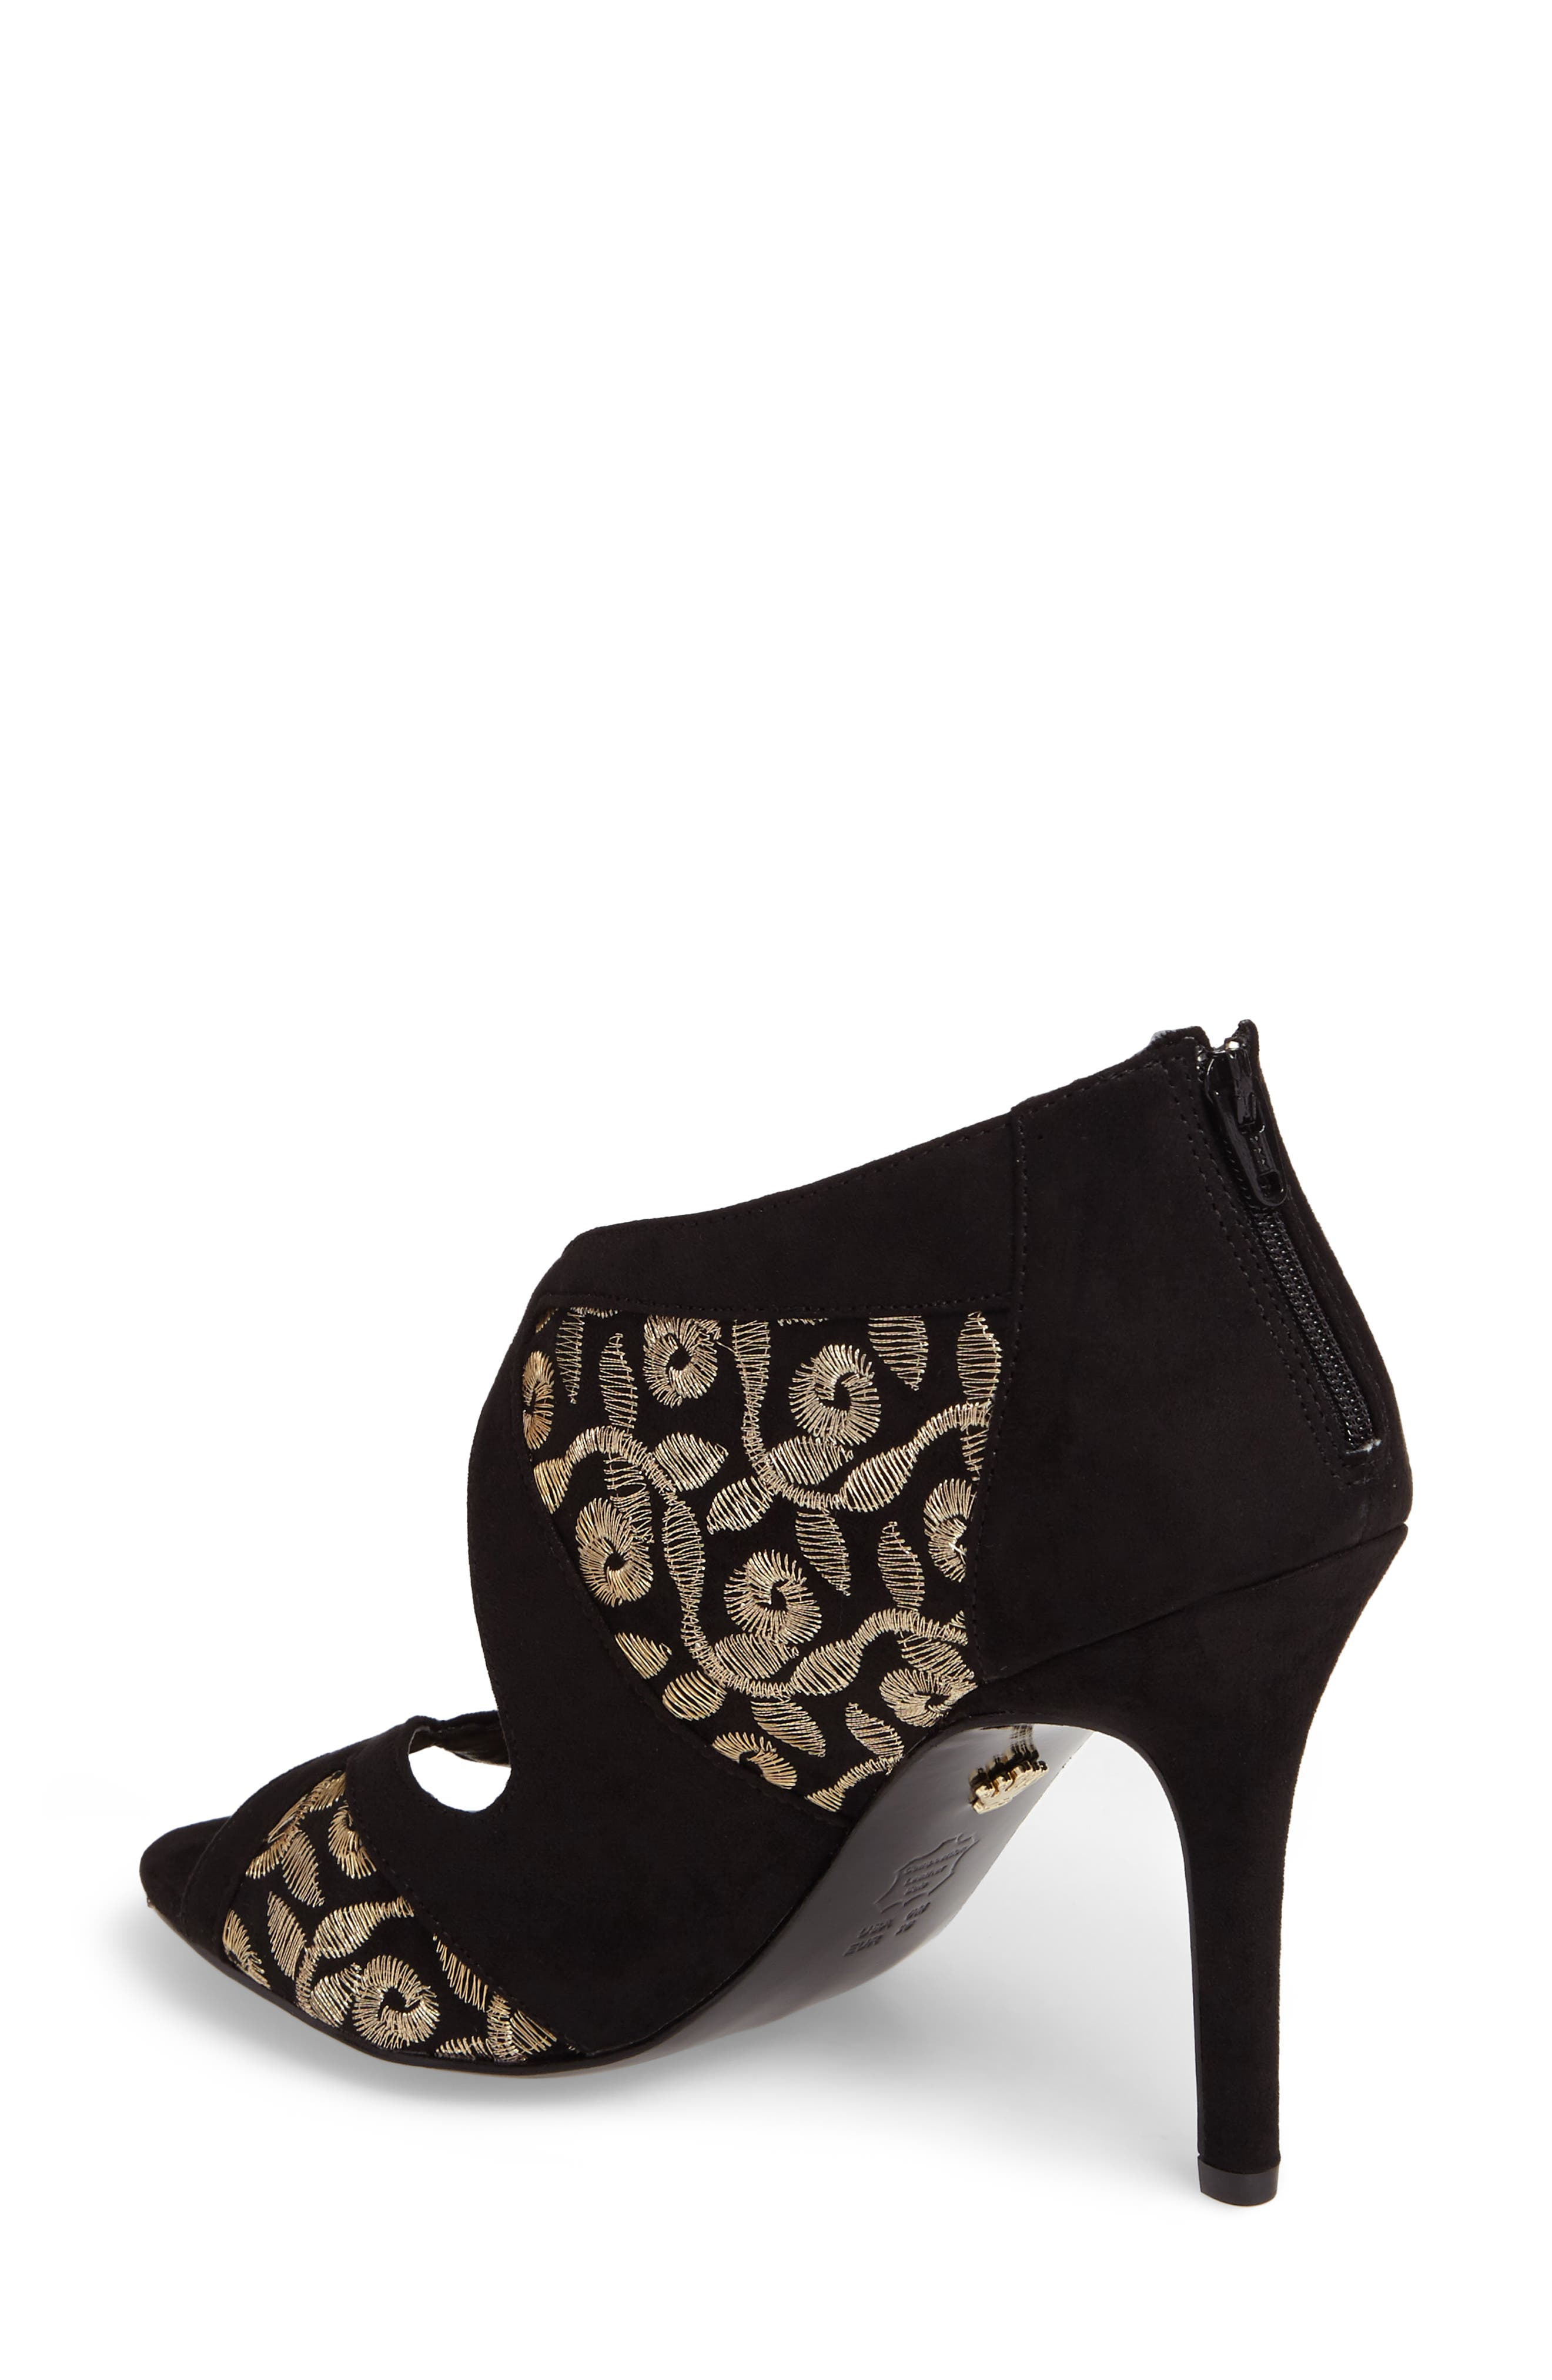 Cordella Open Toe Pump,                             Alternate thumbnail 2, color,                             Black/ Gold Embroidery Fabric